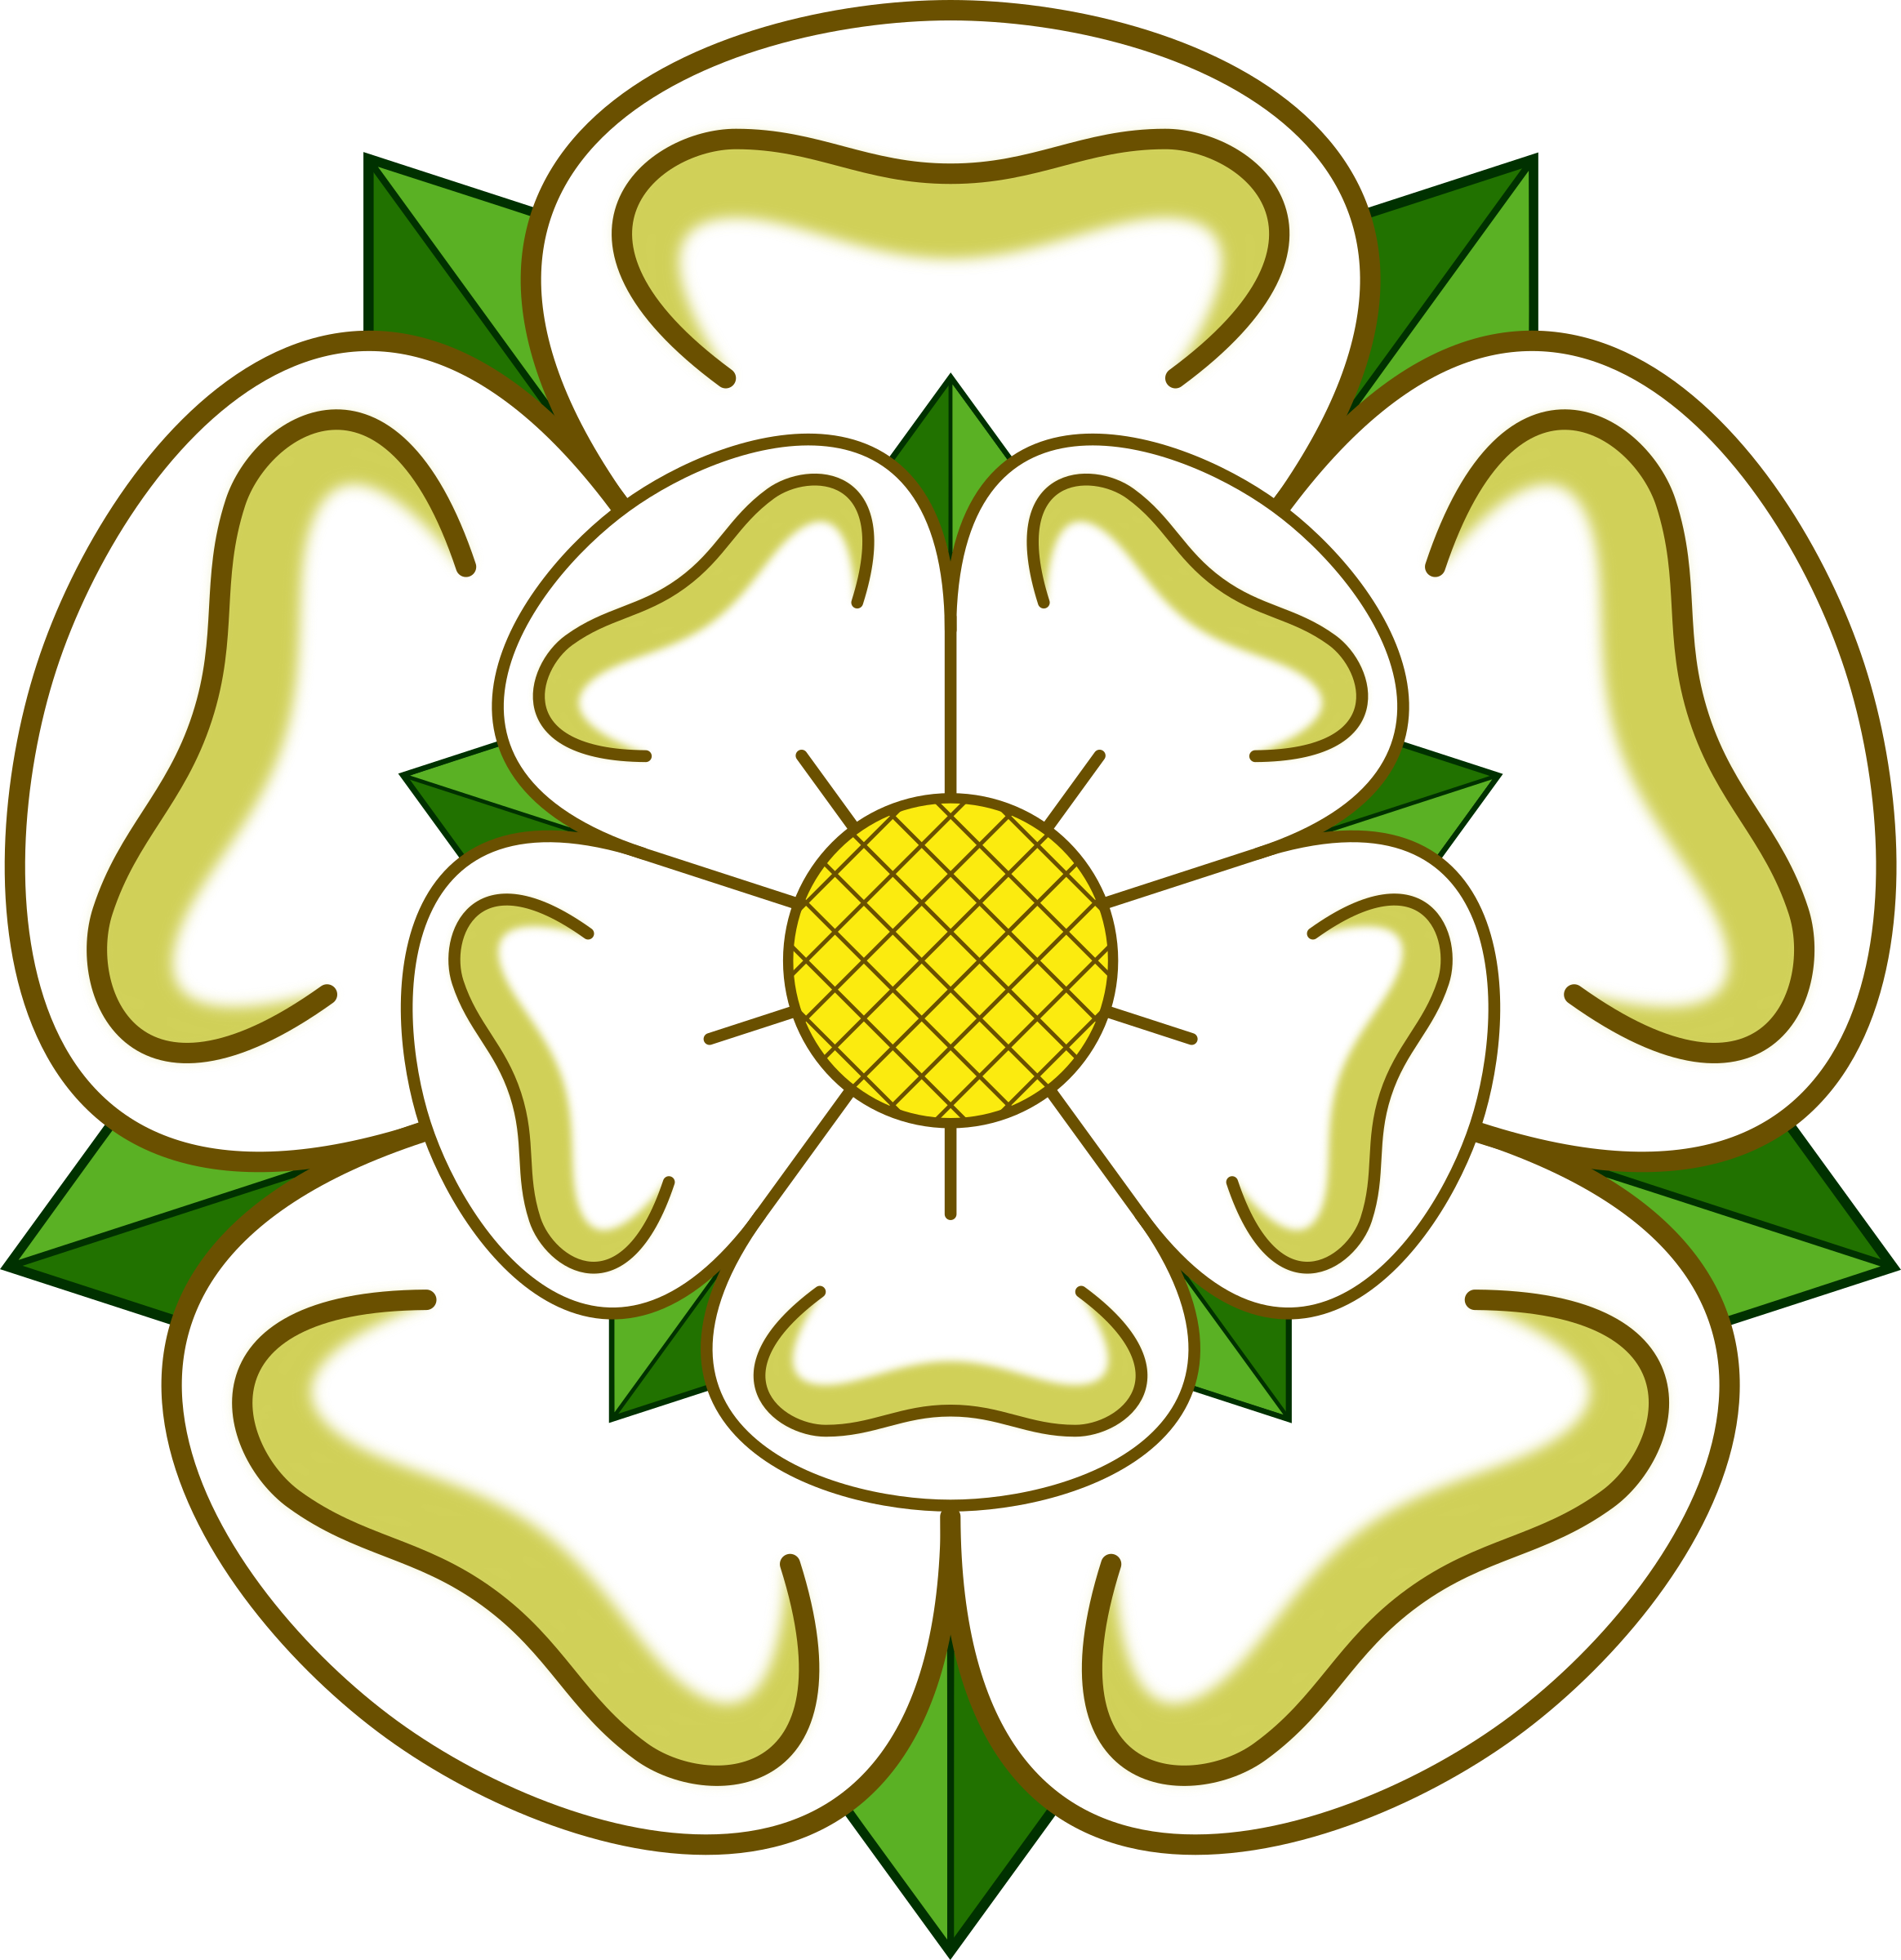 Yorkshire rose by Firkin